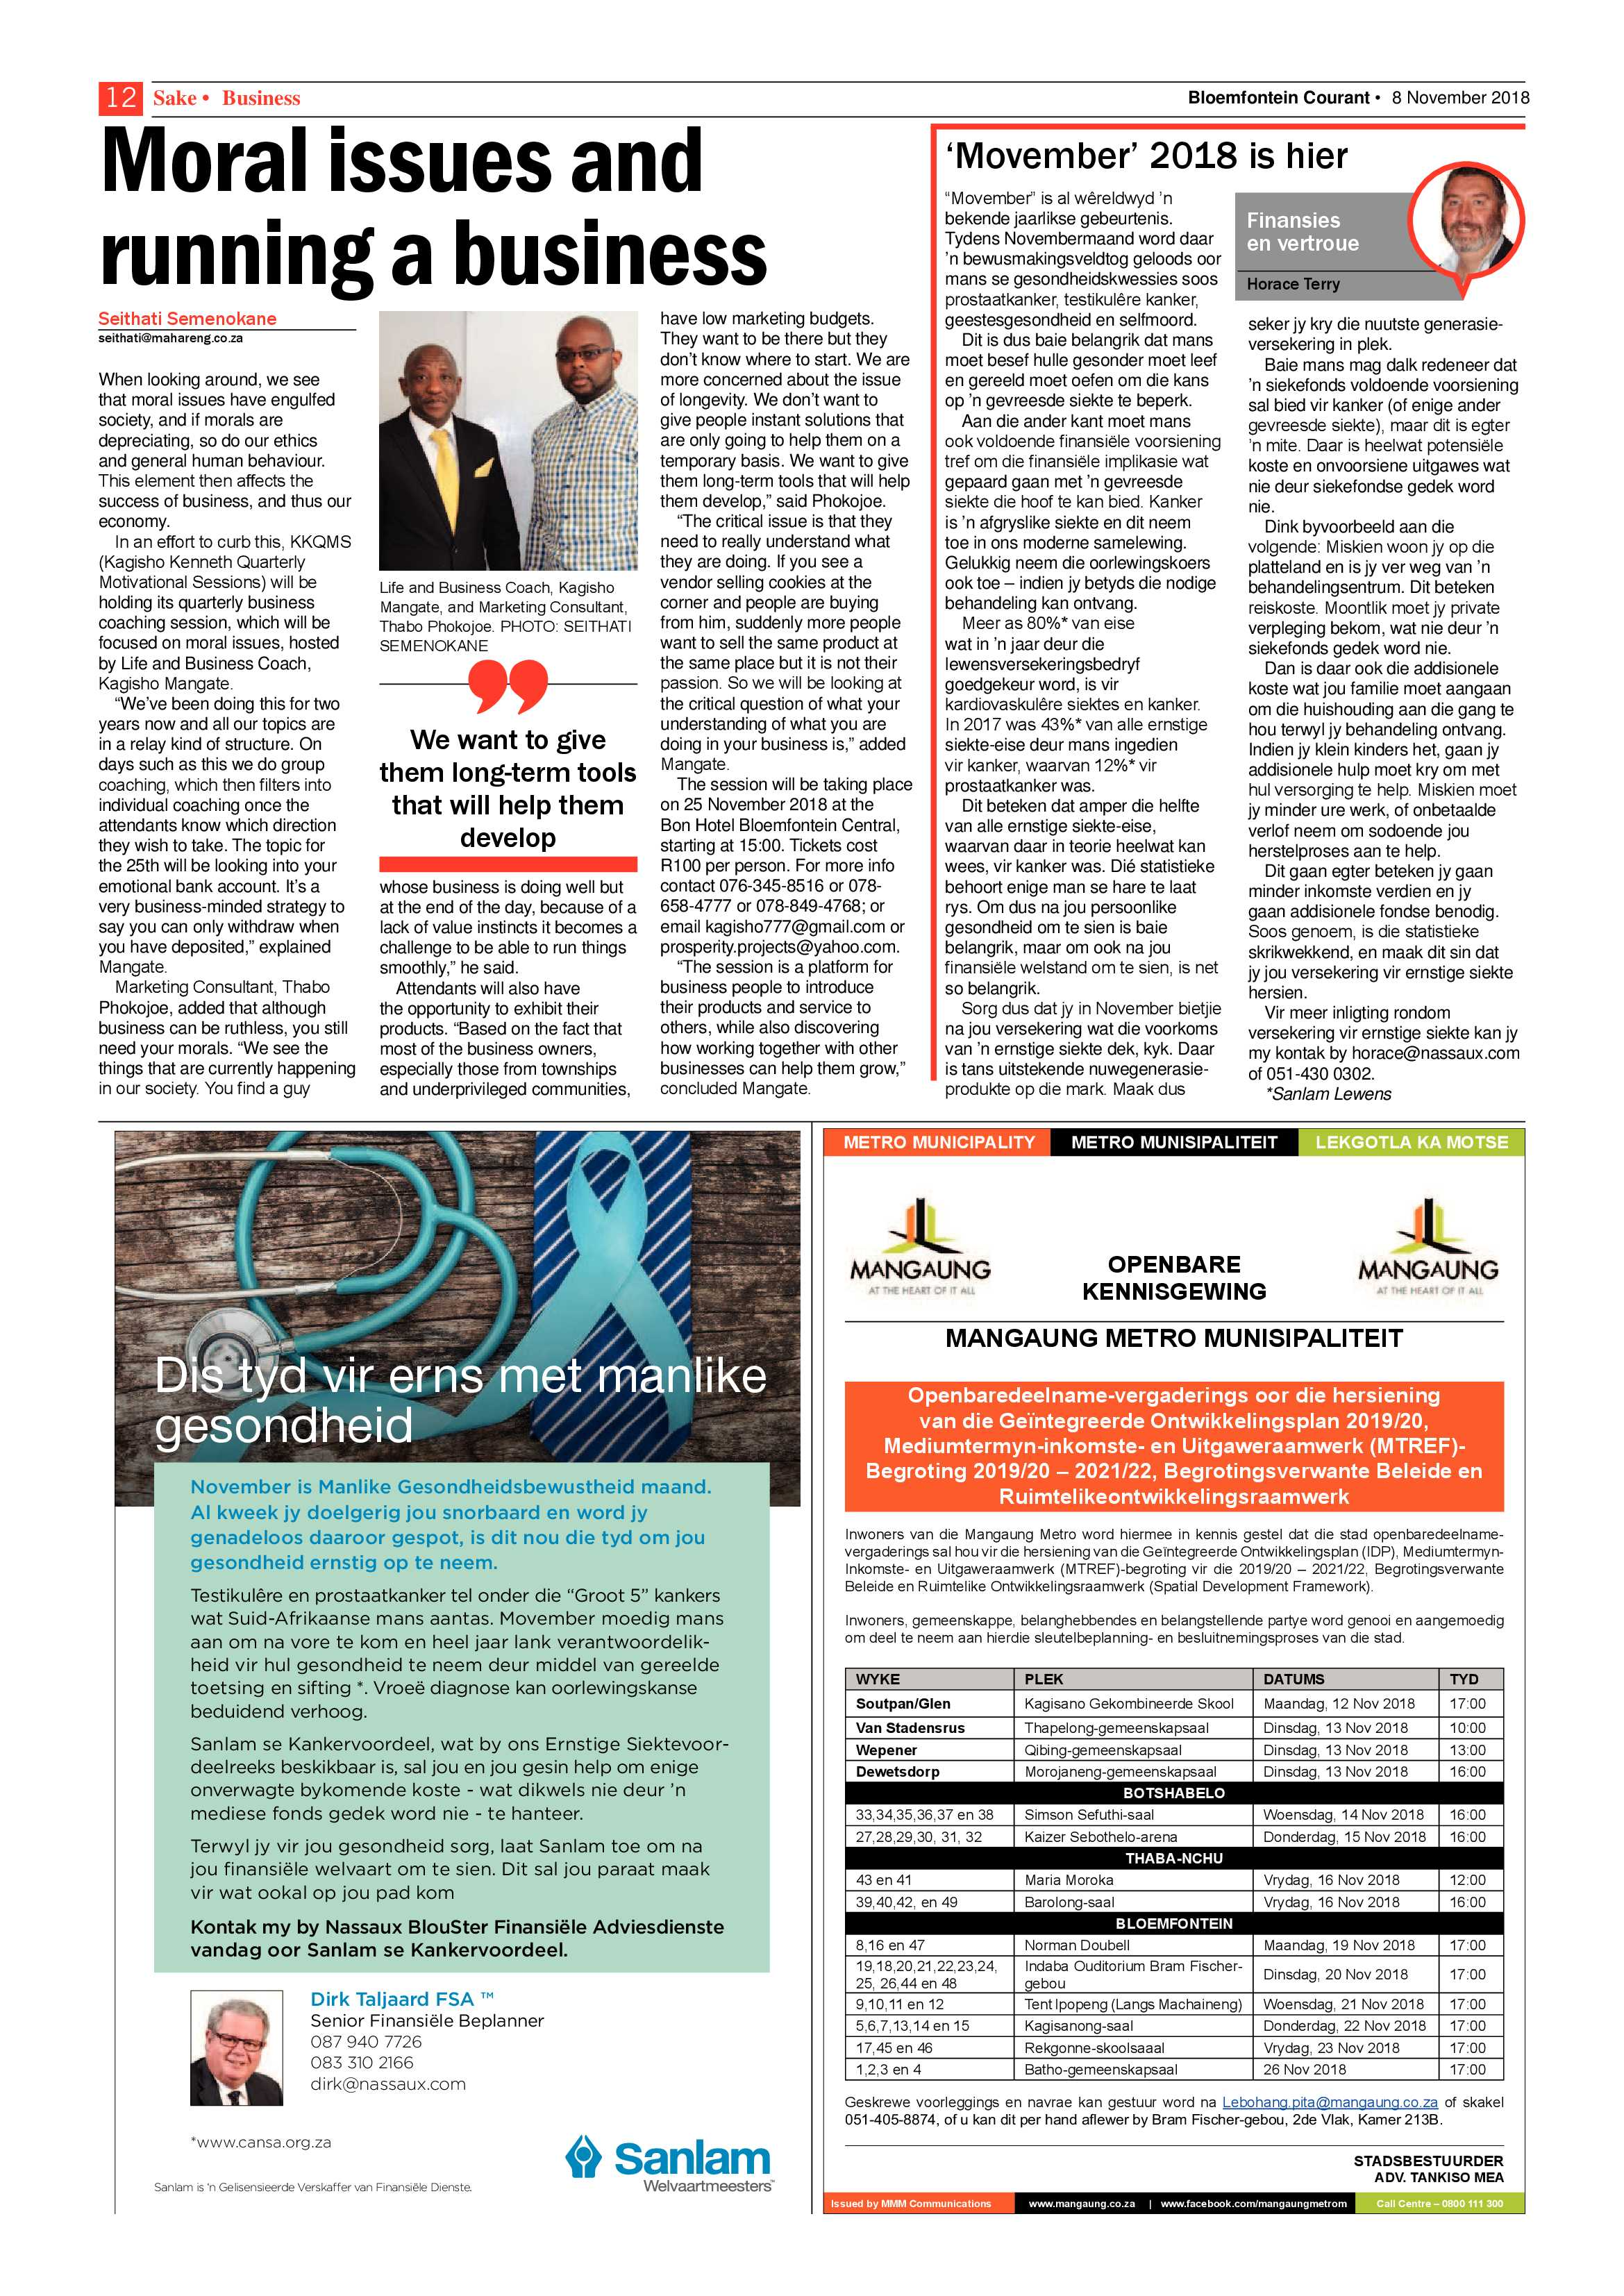 courant-8-november-2018-epapers-page-12